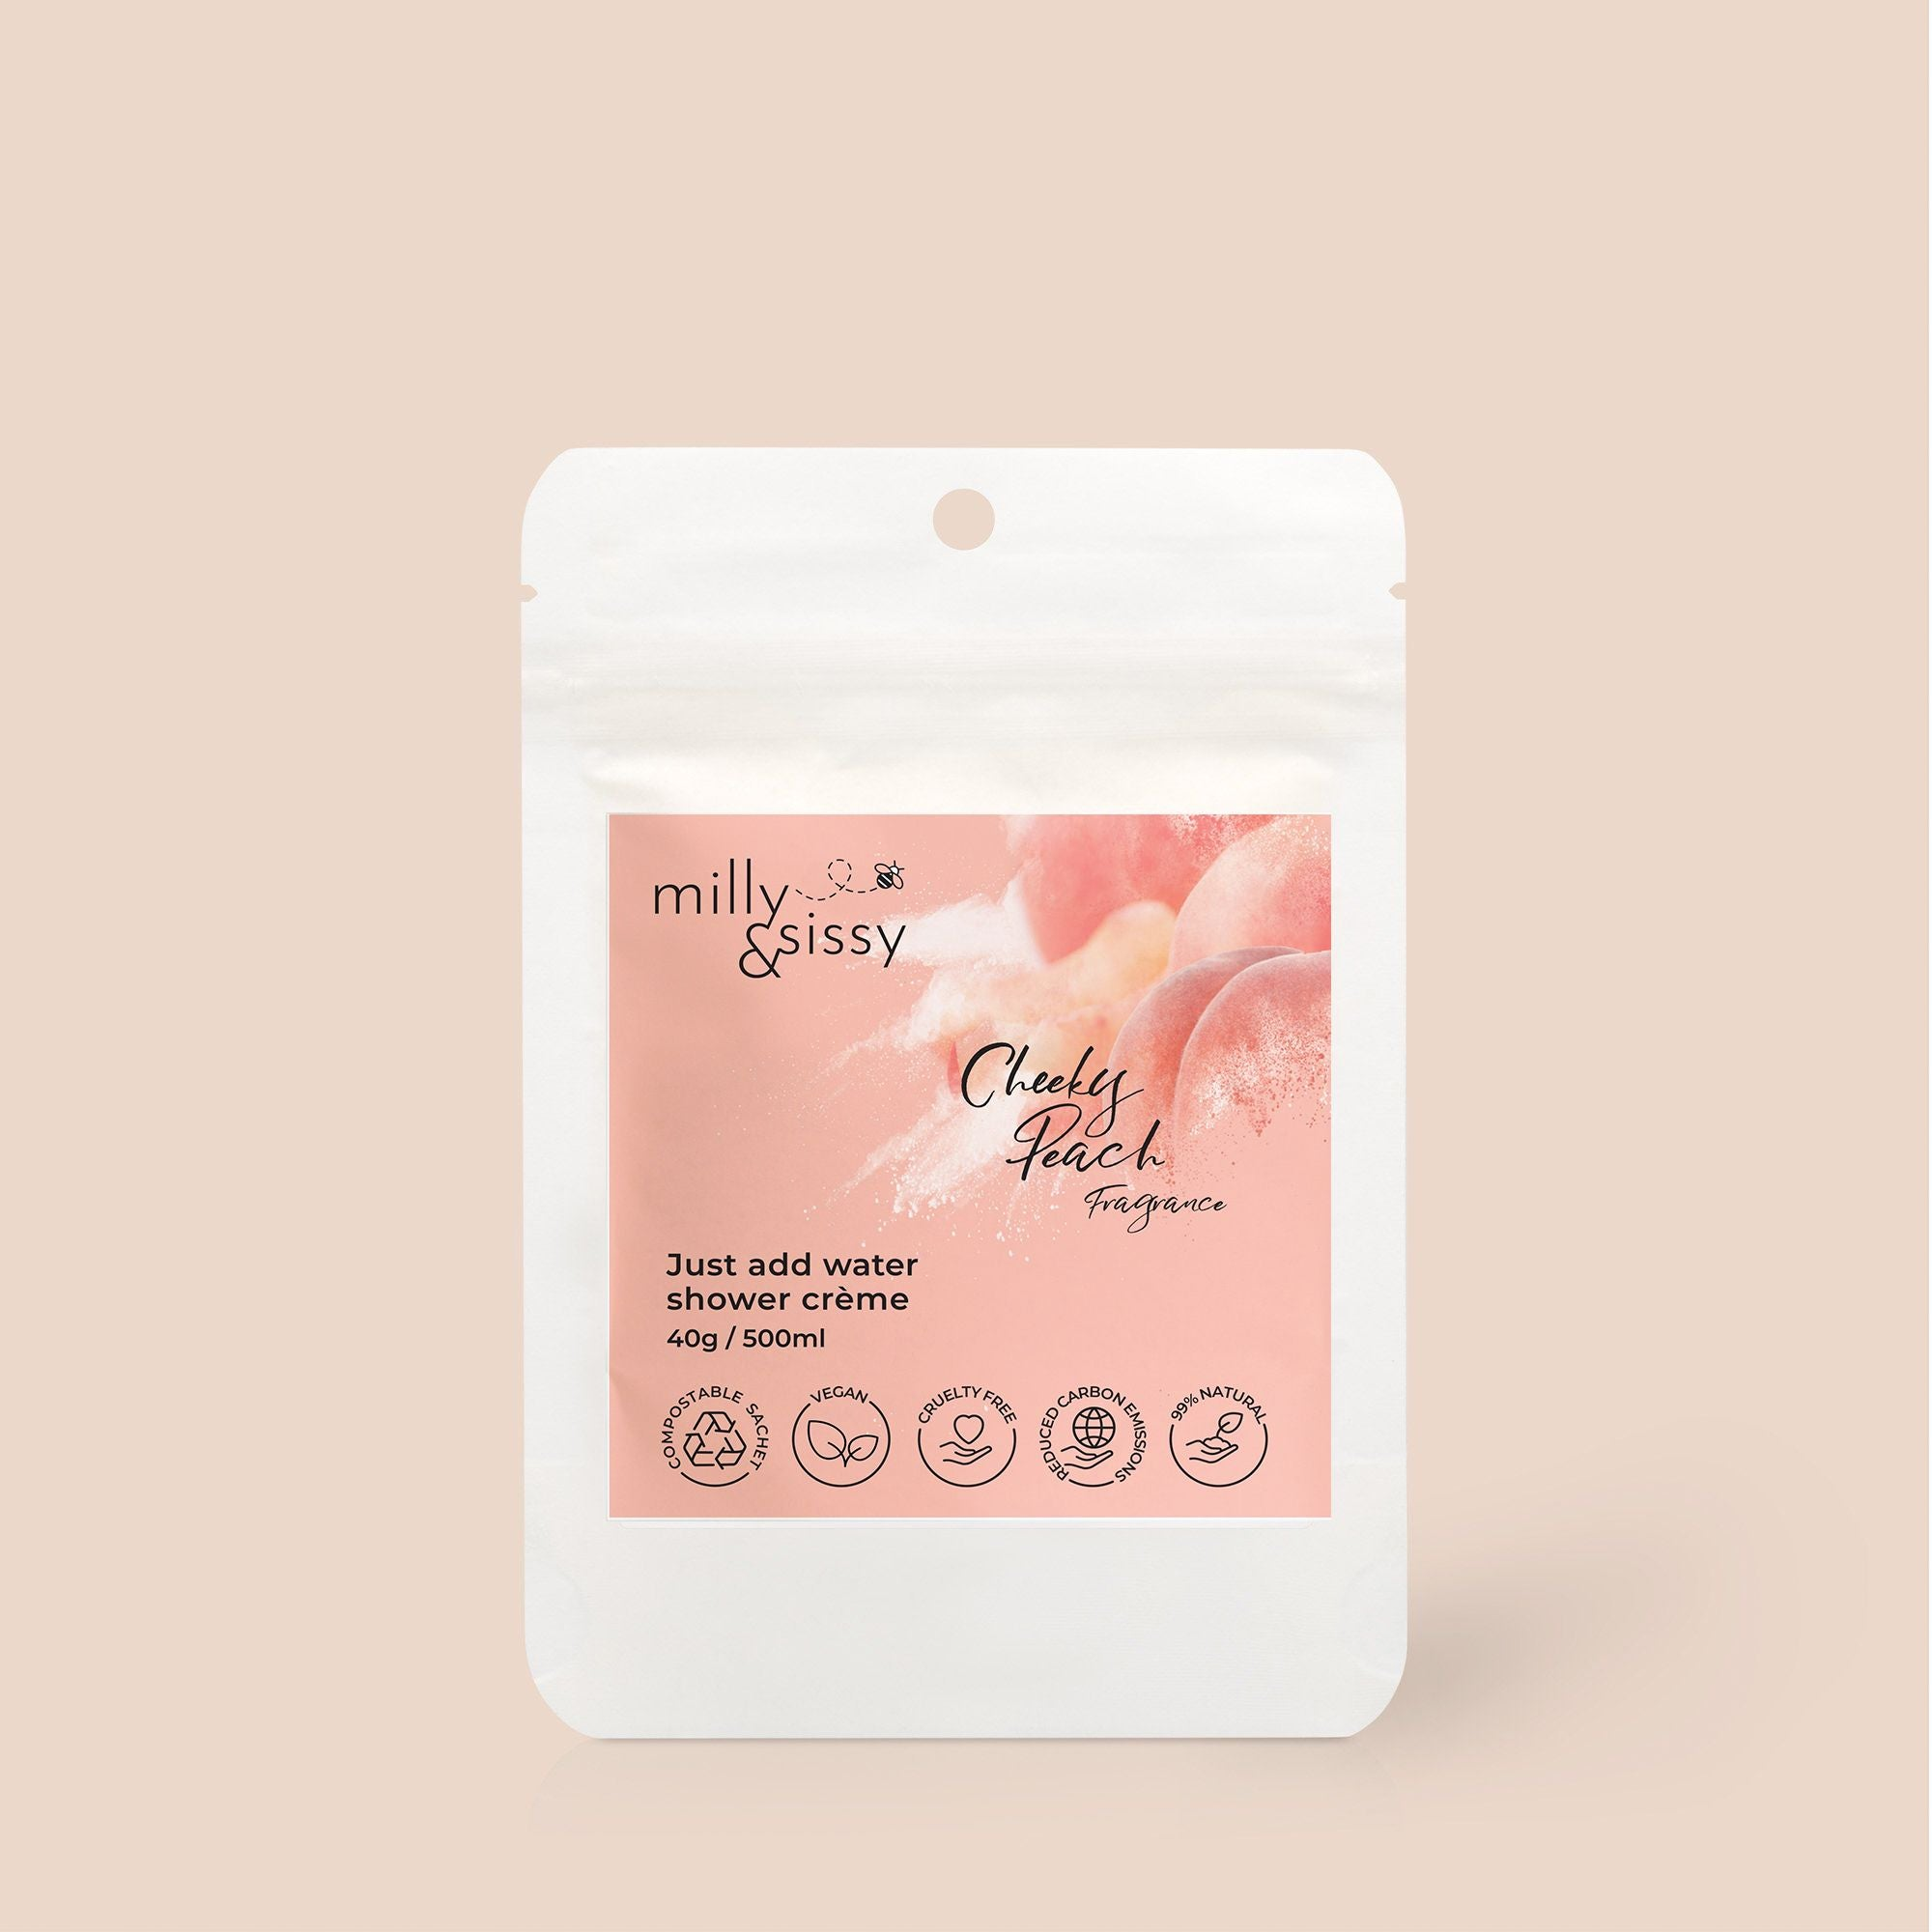 ZERO WASTE Shower Crème Cheeky Peach Refill